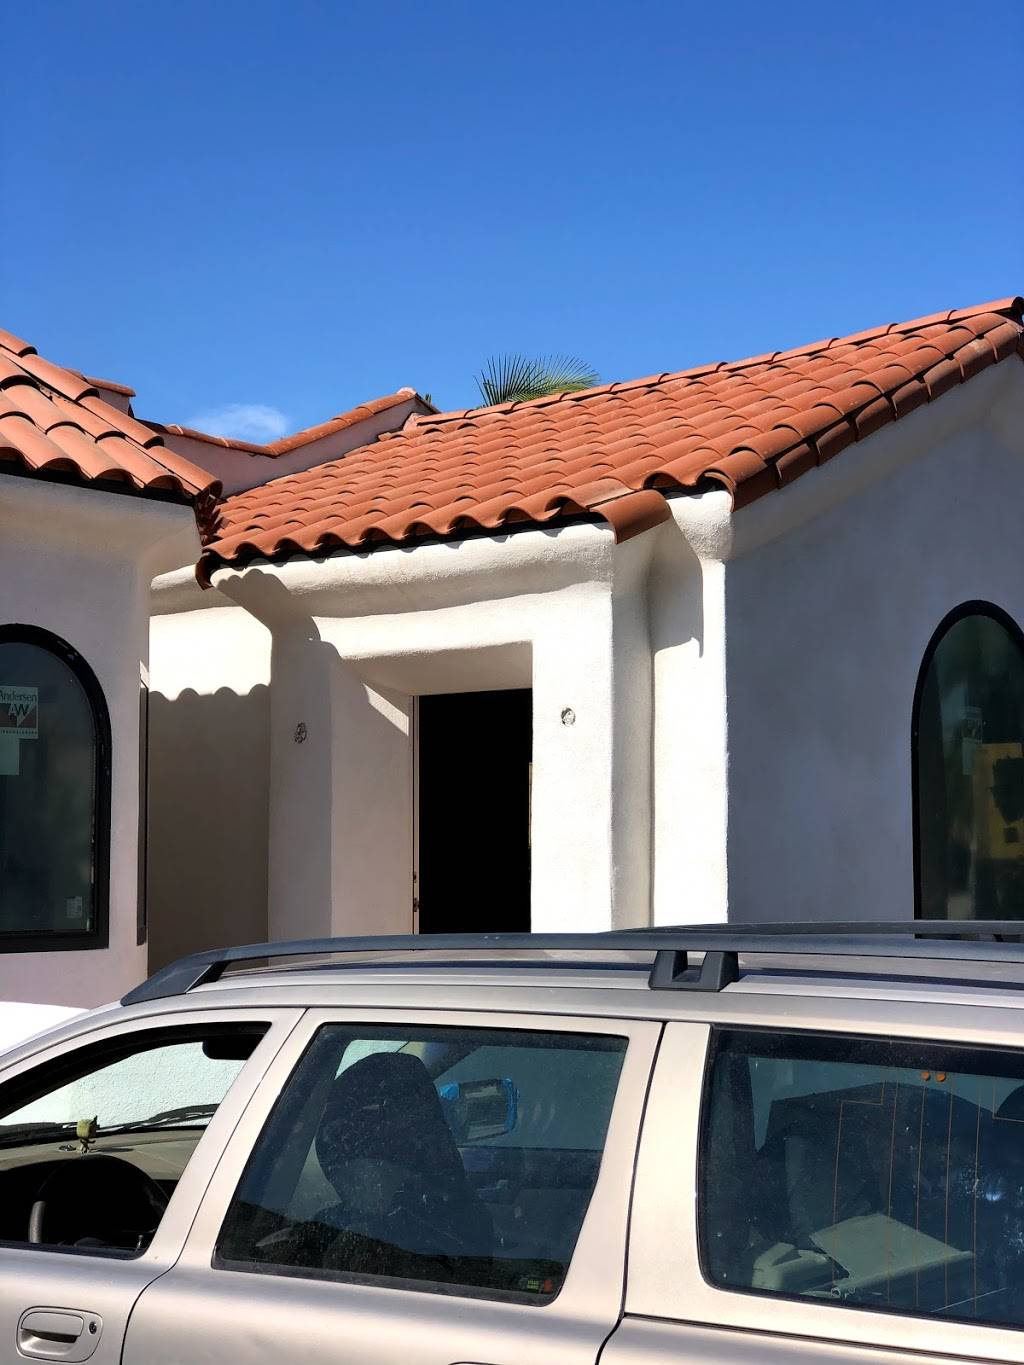 Allied Building Products, A Beacon Roofing Supply Company - home goods store  | Photo 2 of 6 | Address: 1212 W 58th St, Los Angeles, CA 90037, USA | Phone: (323) 753-1277